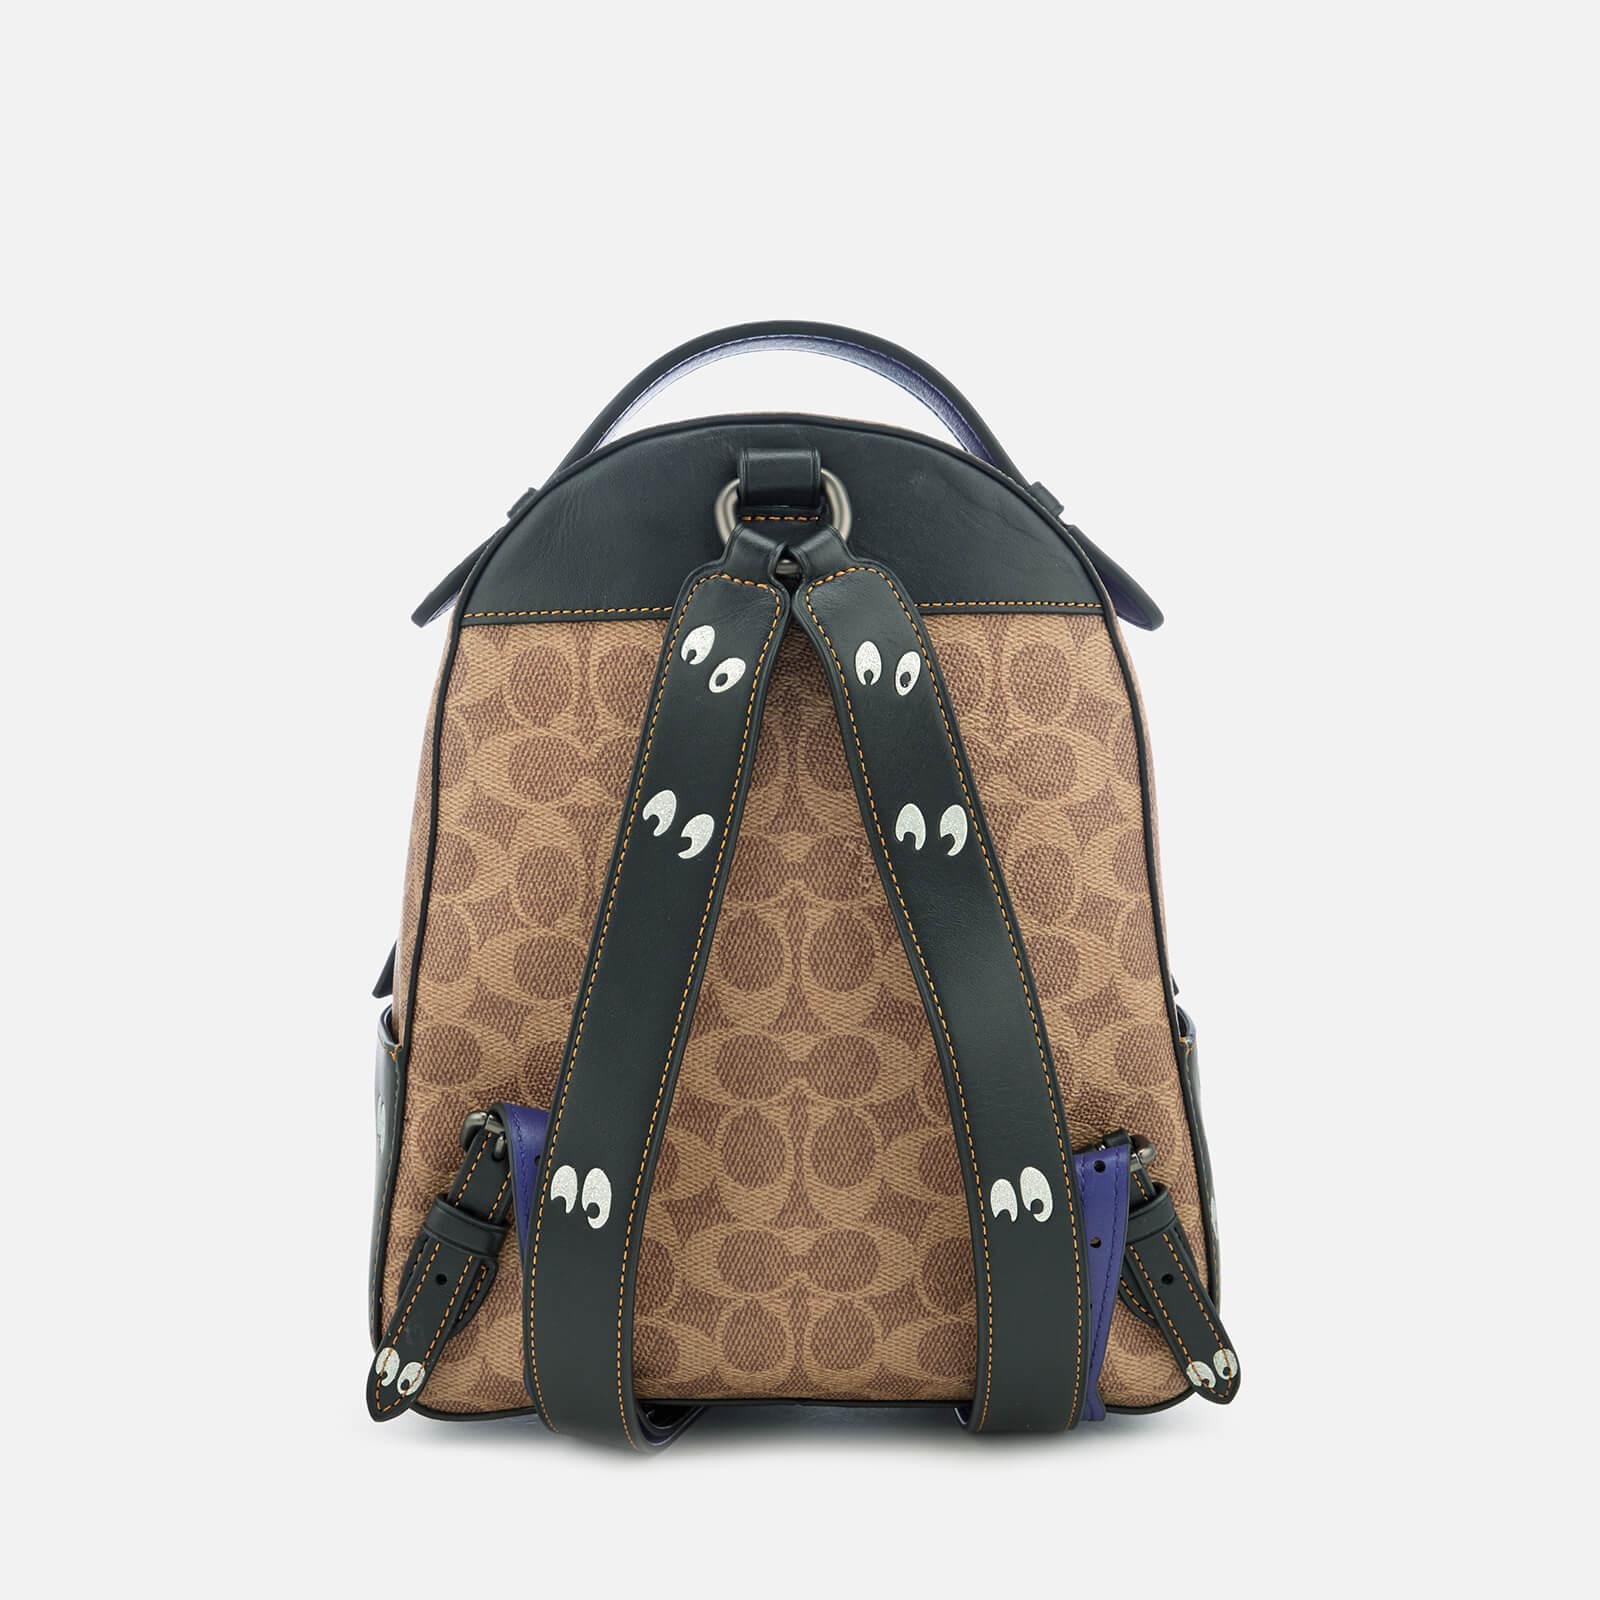 d31ef1f9b33 ... hot lyst coach disney x coach coated canvas snow white campus backpack  23 5a119 14240